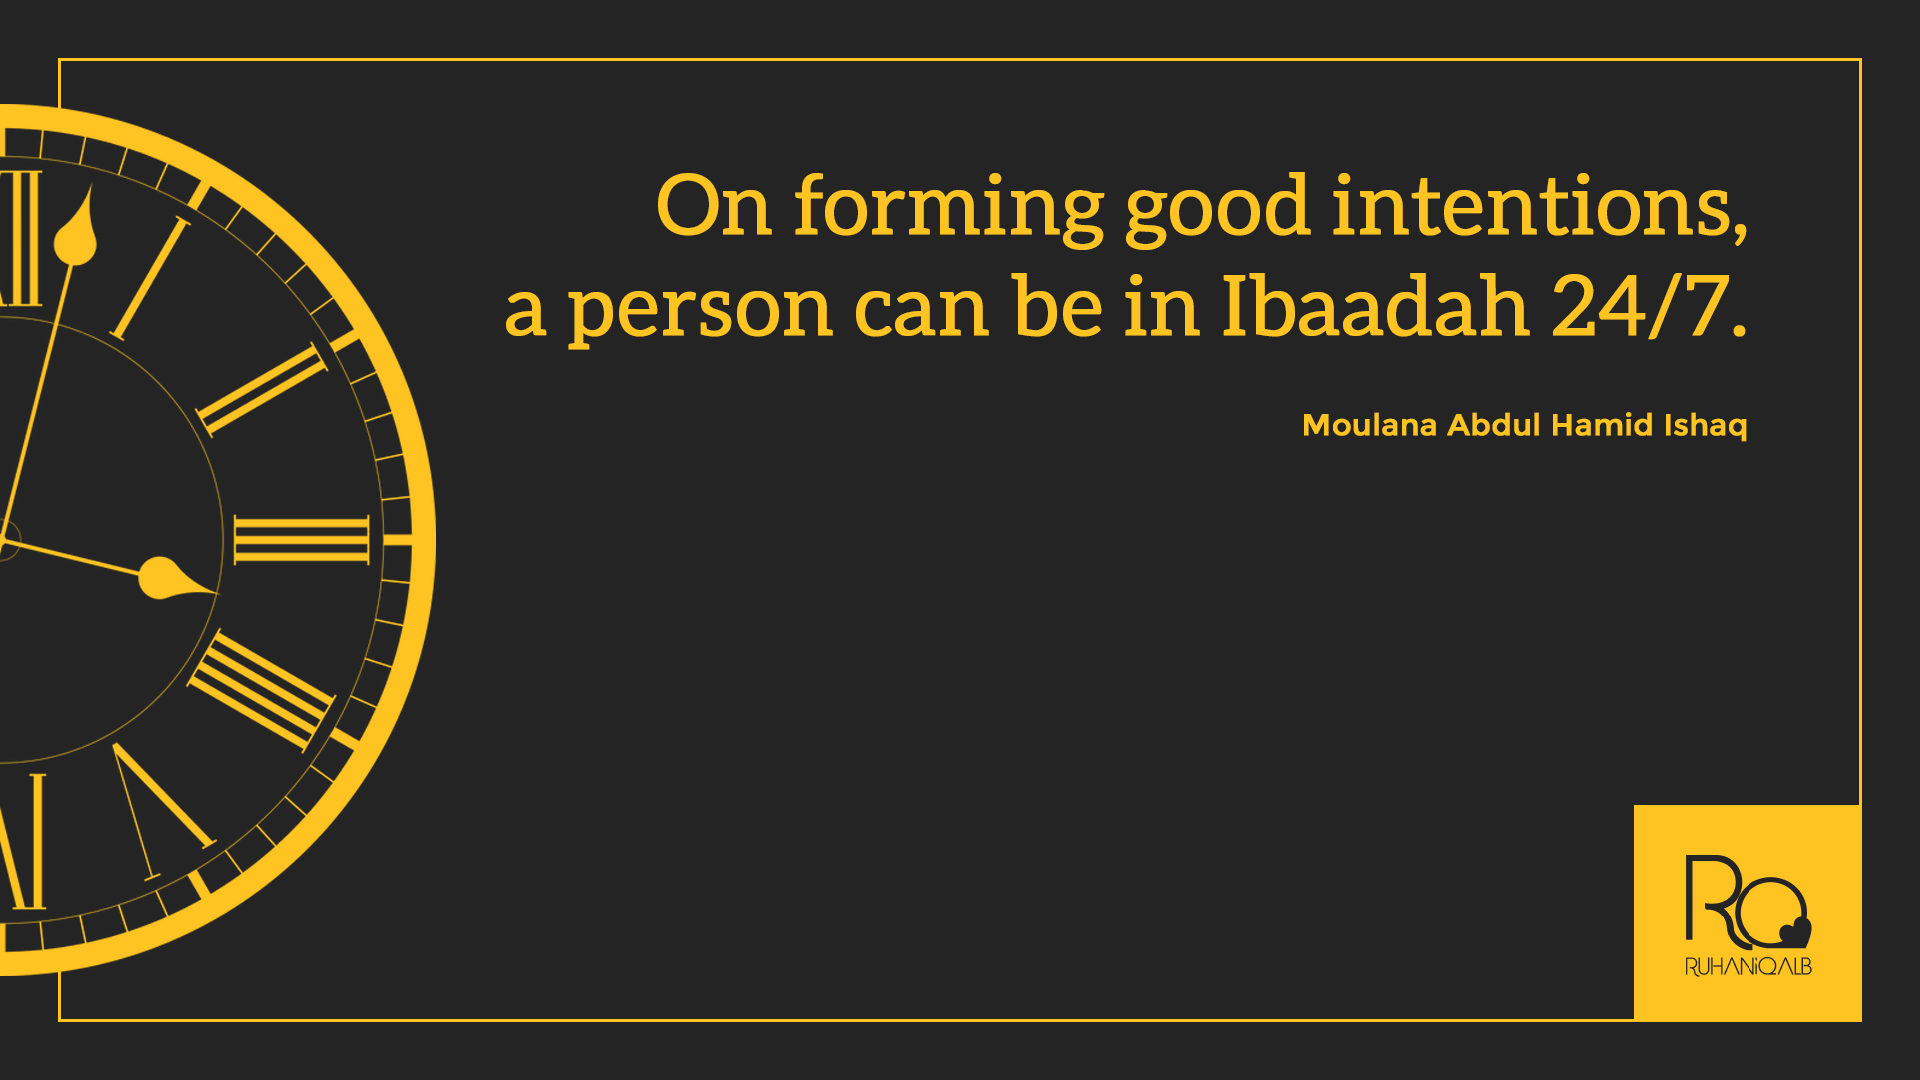 On-forming-good-intentions-a-person-can-be-in-ibadah-247